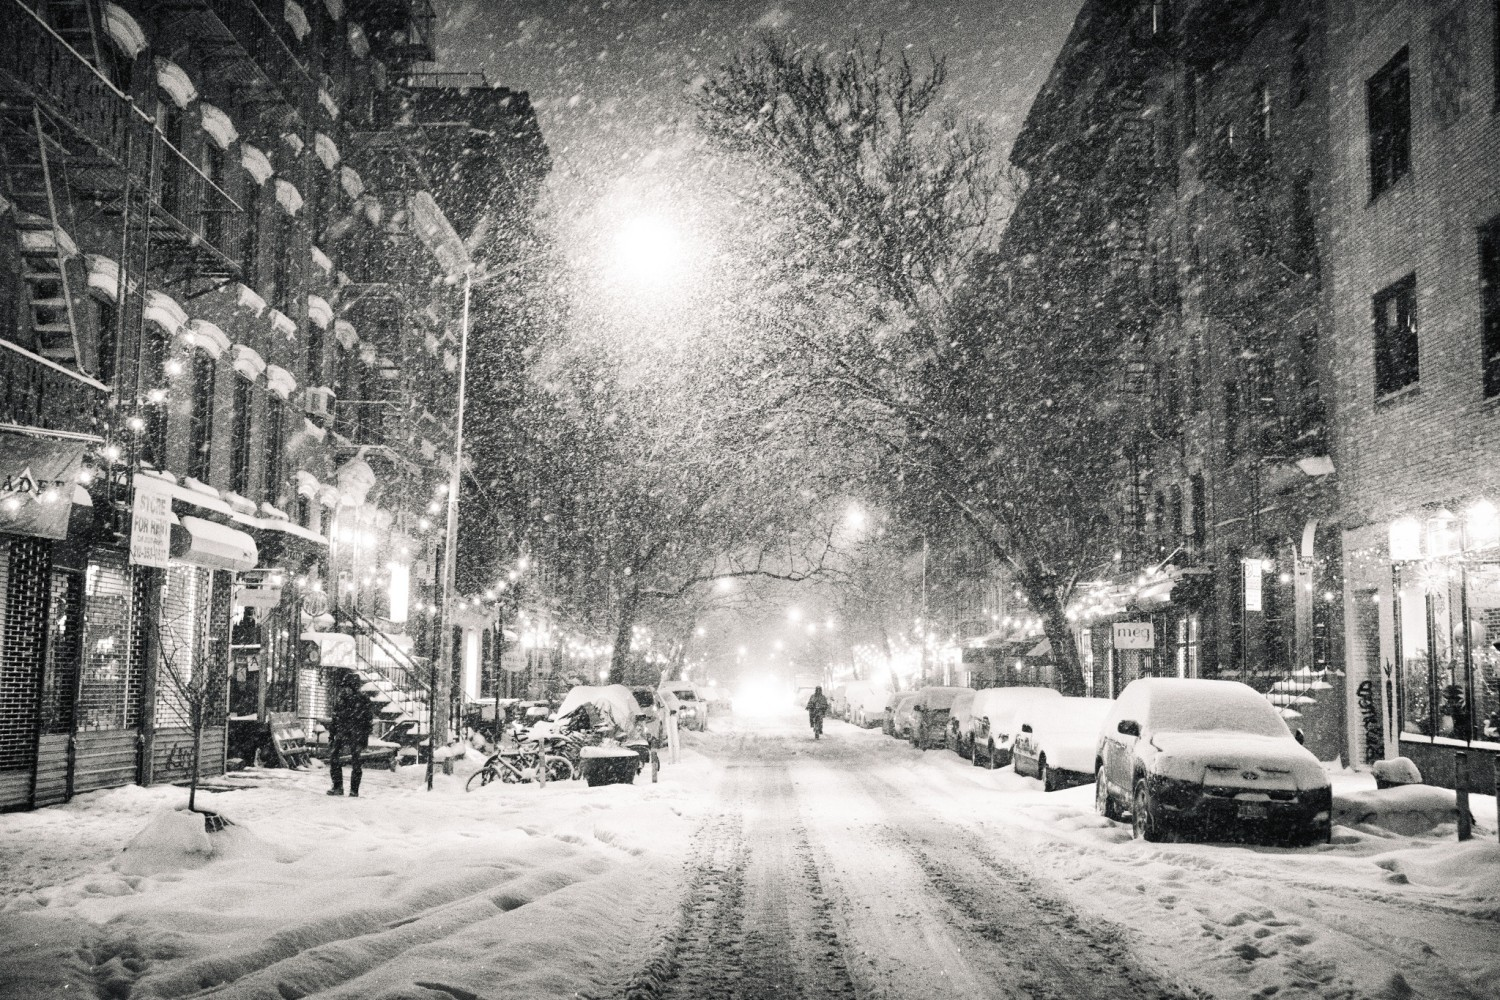 These 21 New York City Blizzard Pics Show What's In Store for the #Blizzardof2015